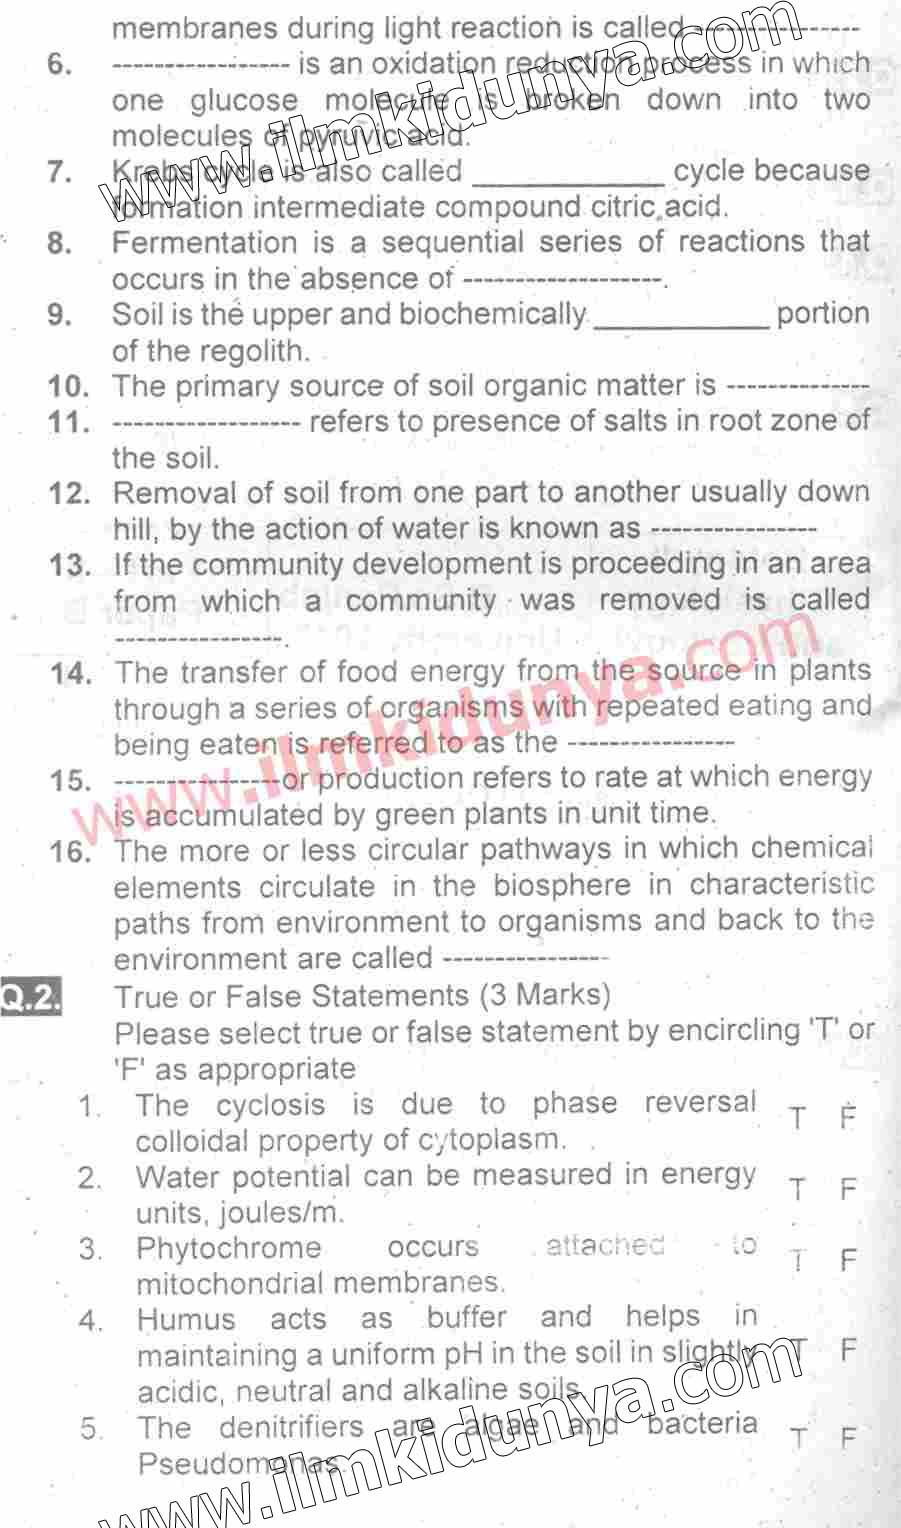 Past Papers 2017 Punjab University BSc Part 2 Botany physiology